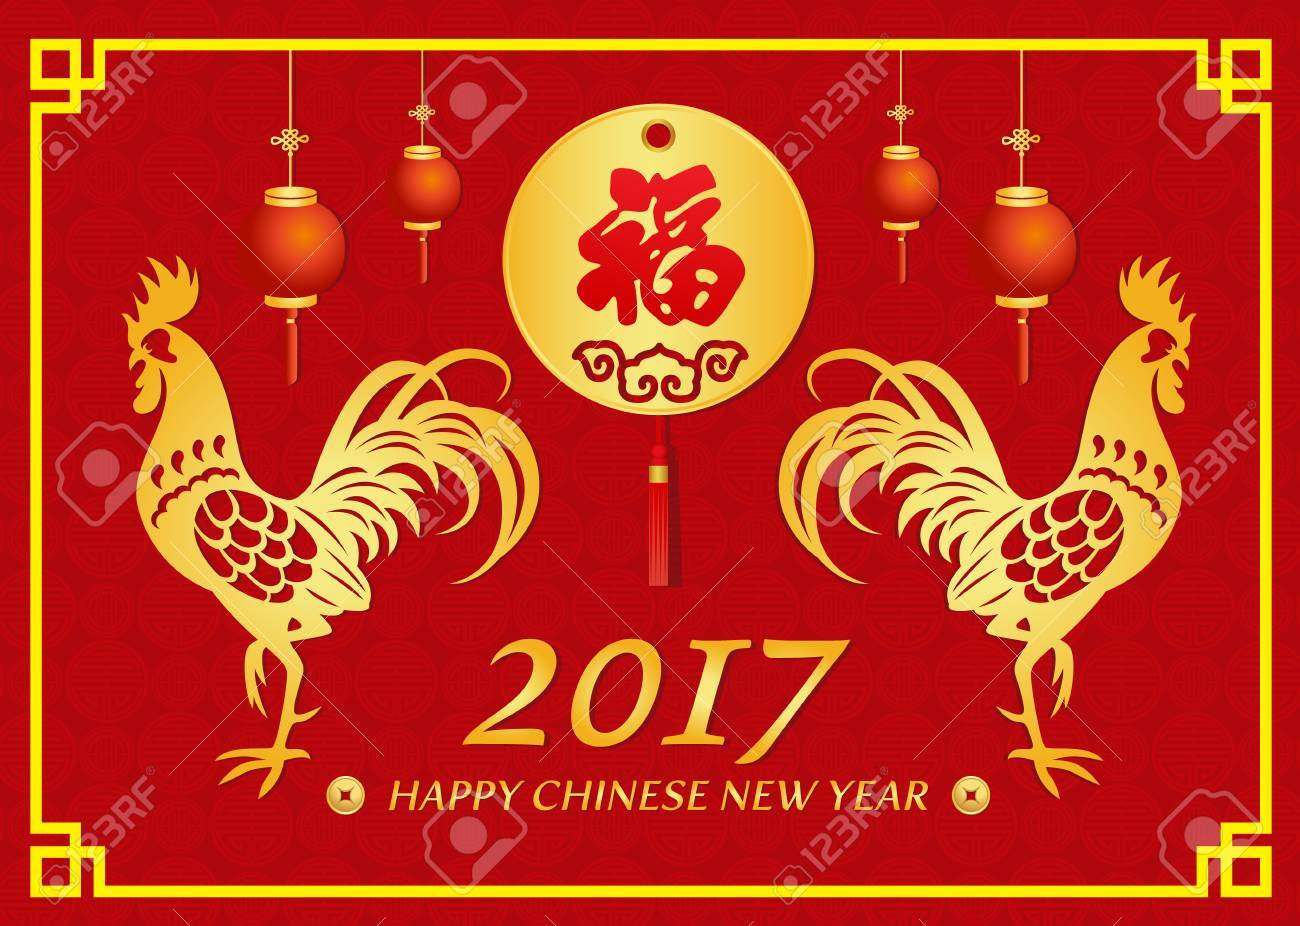 happy chinese new year 2017 card is lanterns 2 gold chicken and gold circle china